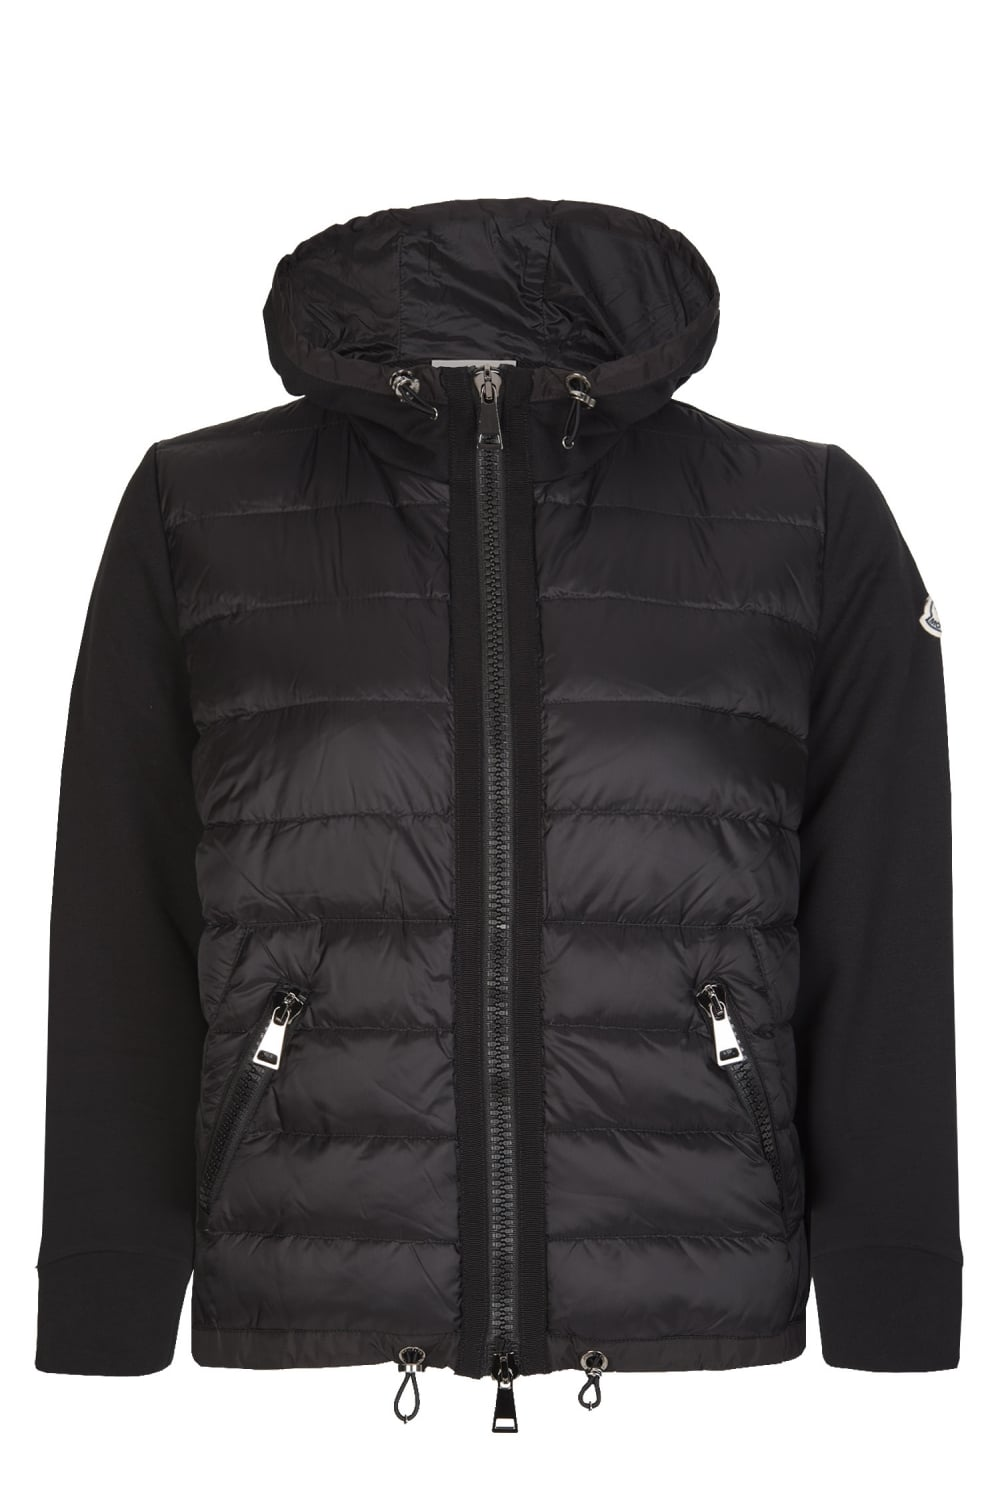 Moncler Women S Mixed Fabric Hooded Jacket Black